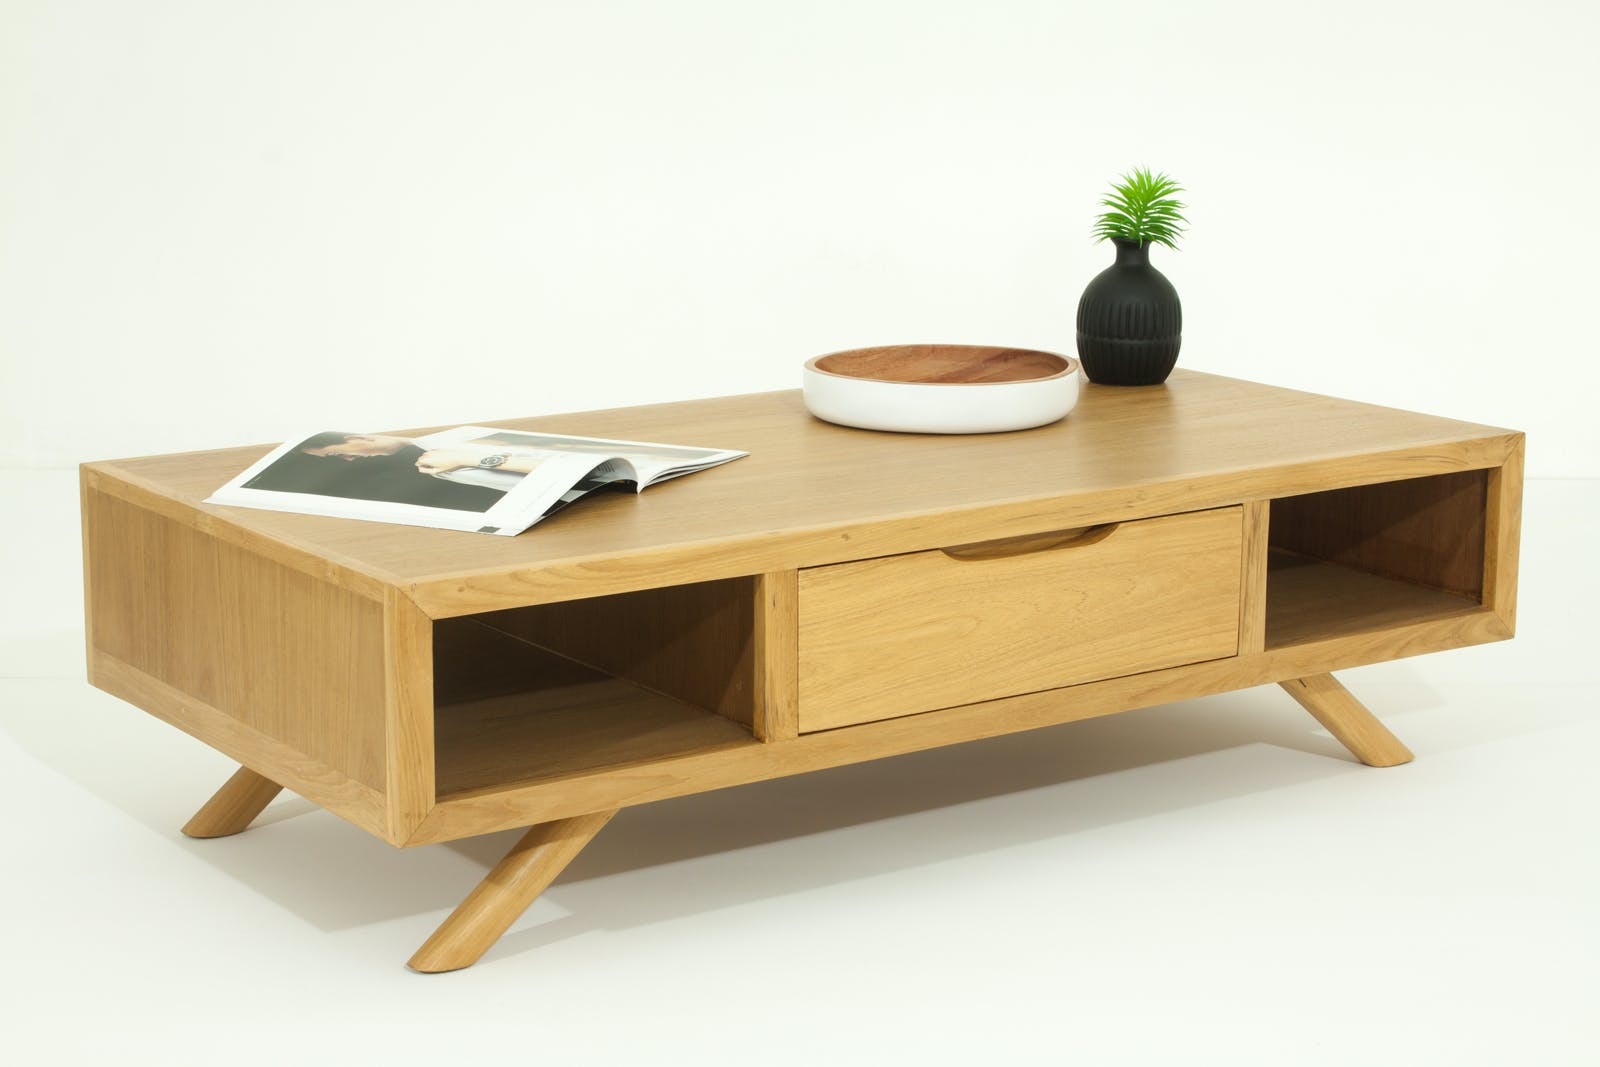 Table basse en Teck massif naturel 2 tiroirs et 2 niches traversantes 120x60x34cm FIFTEES